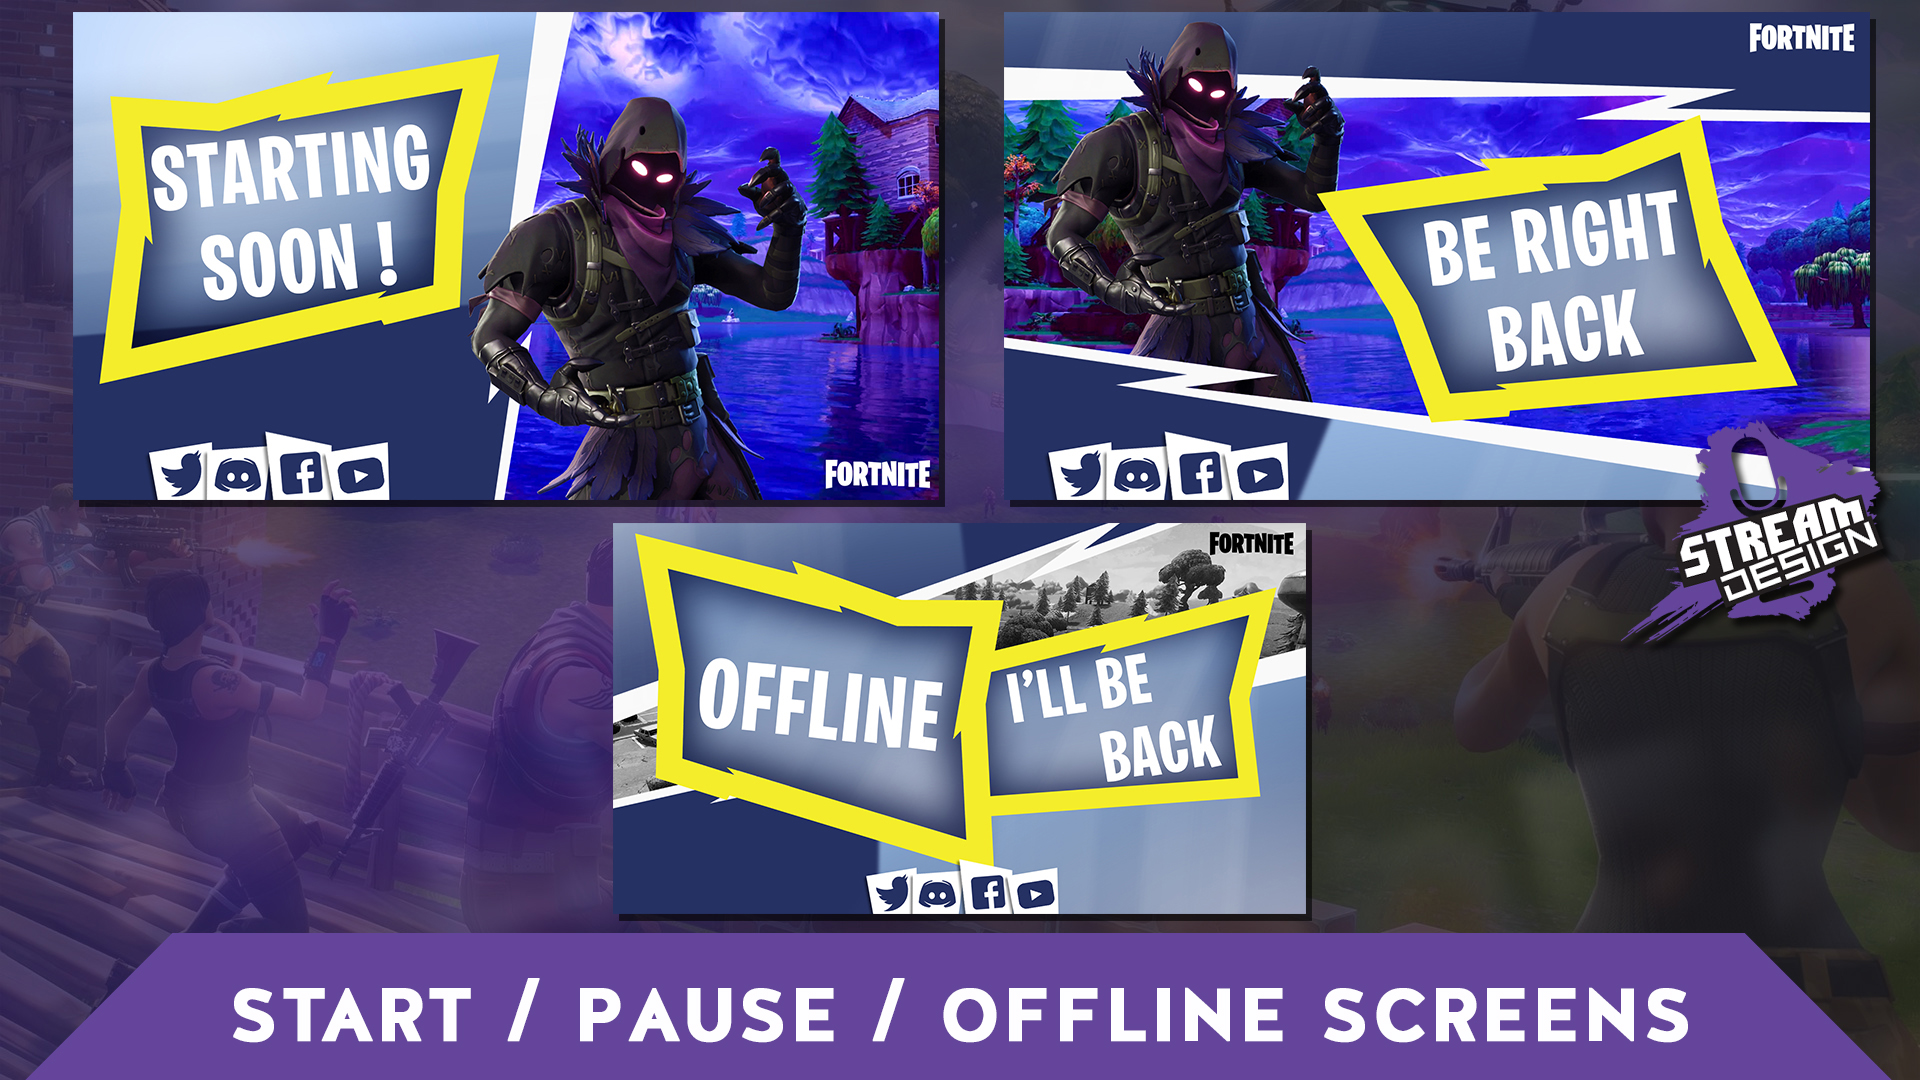 """""""Fortnite Themed"""" – Screens, Overlay & Panels for Twitch"""